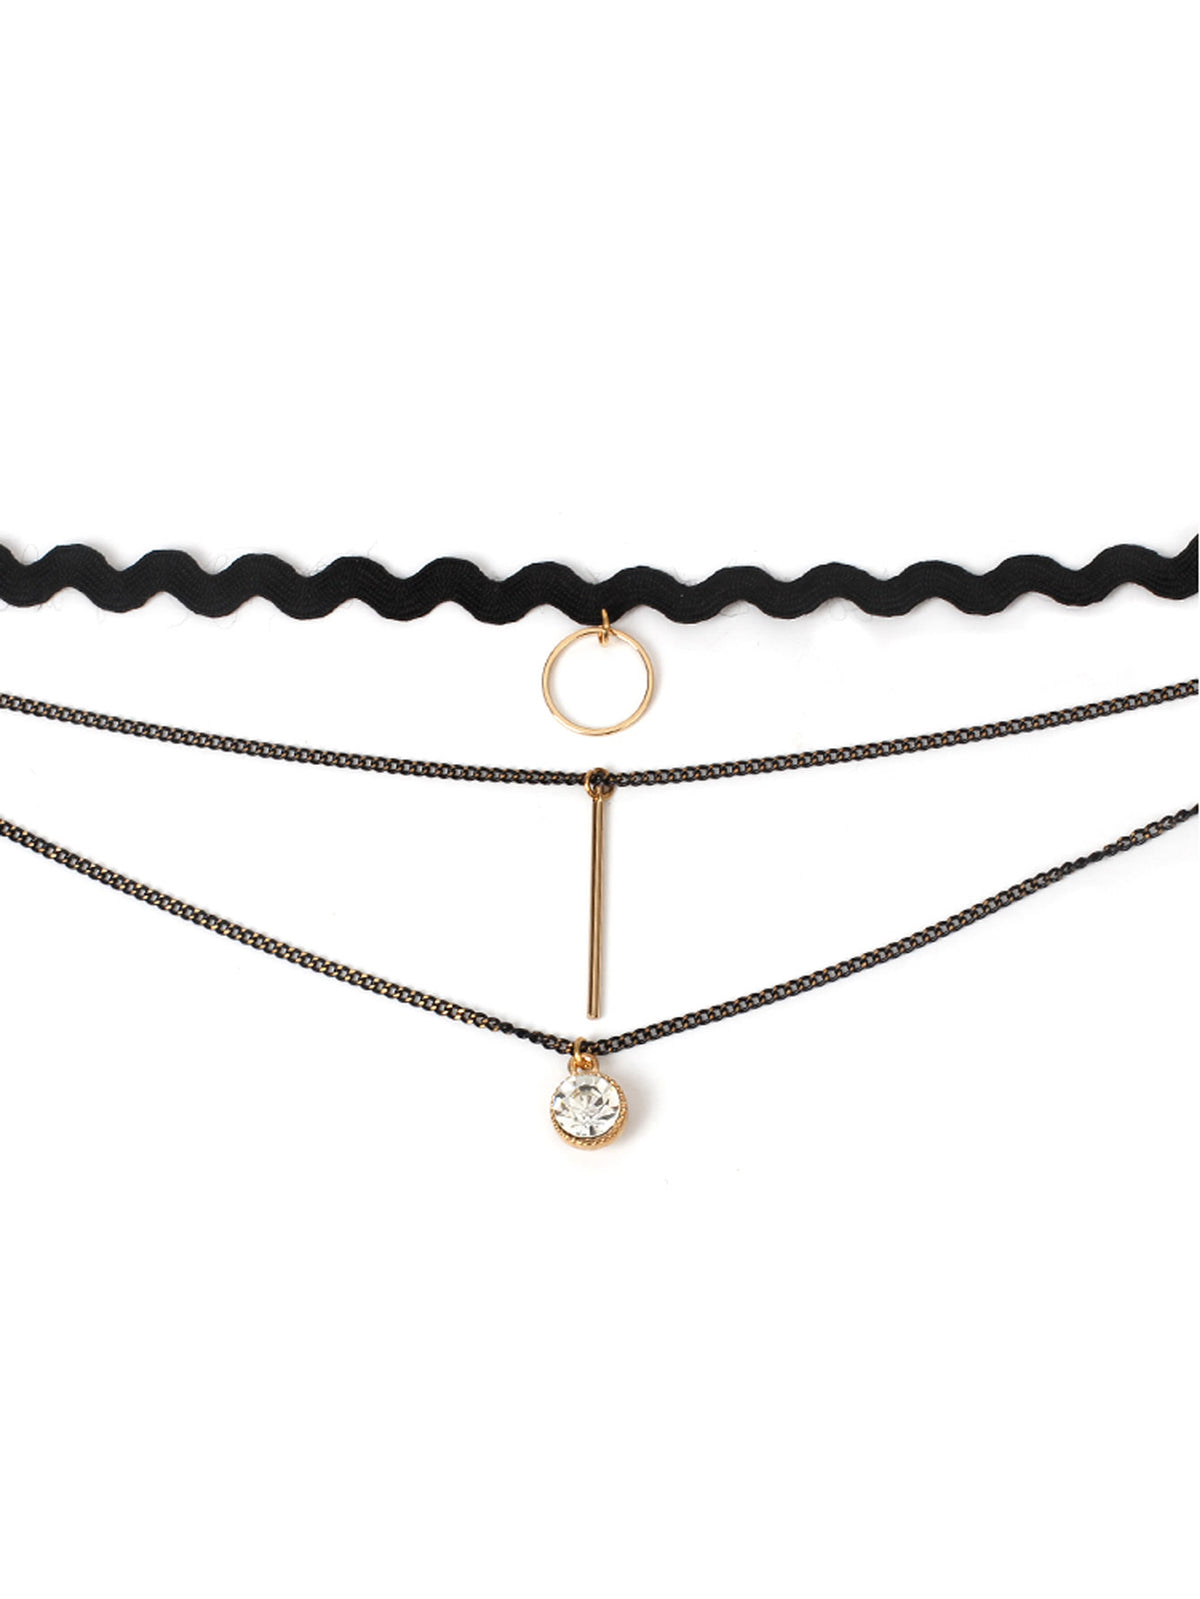 Ring & Bar Detail Layered Chain Necklace